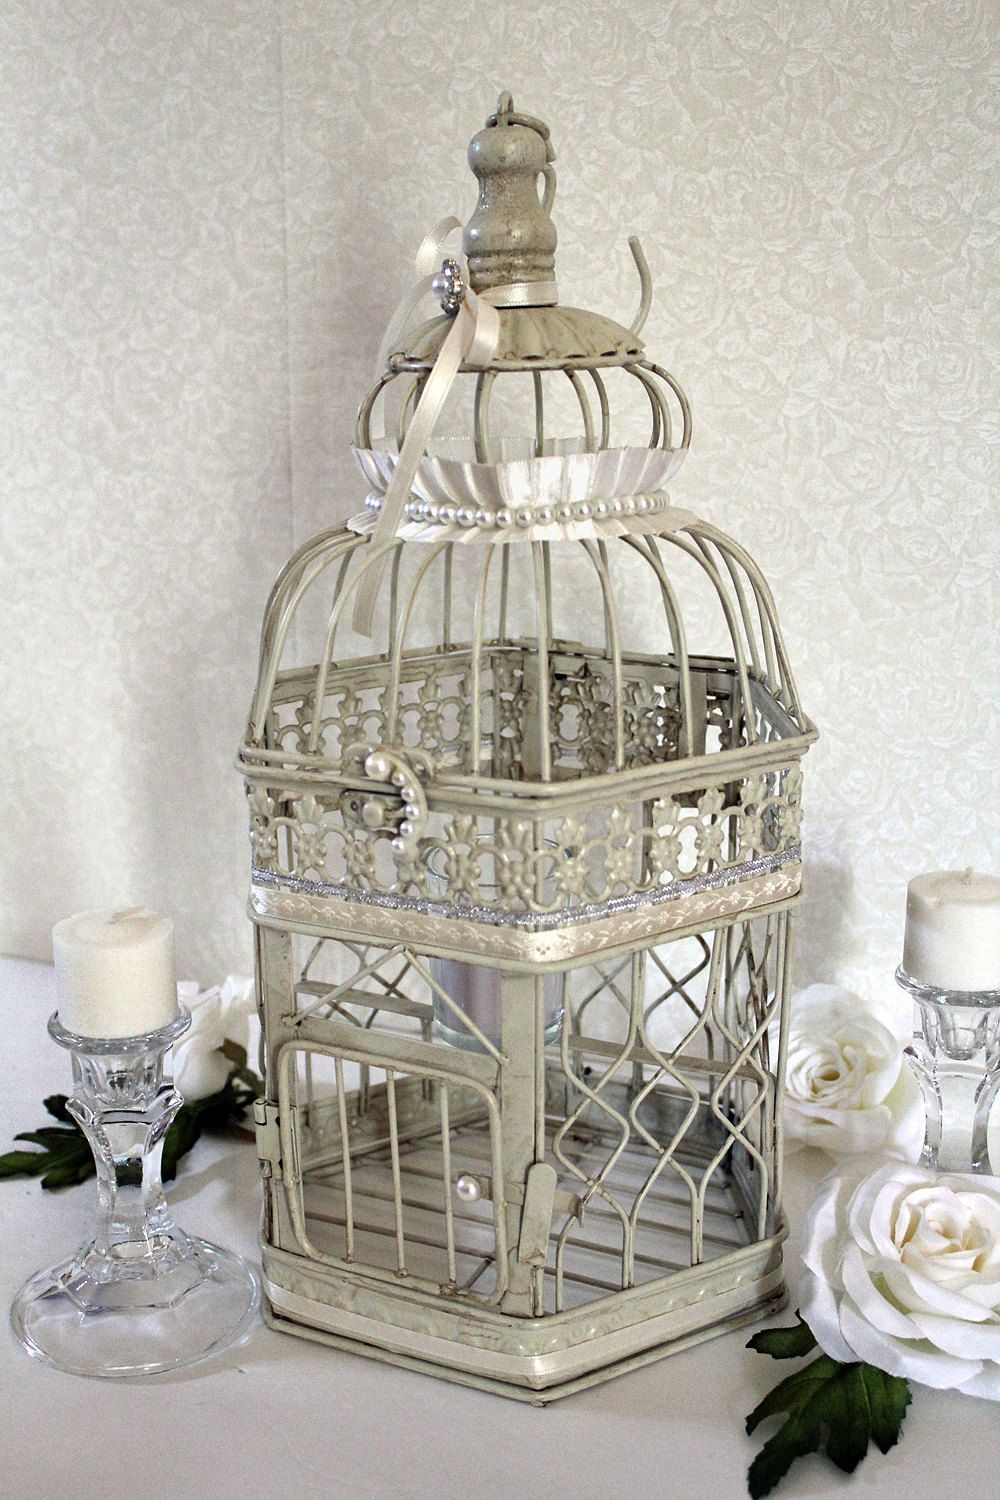 Centerpiece Wishing Well Wedding Birdcage Centerpiece Bird Cage